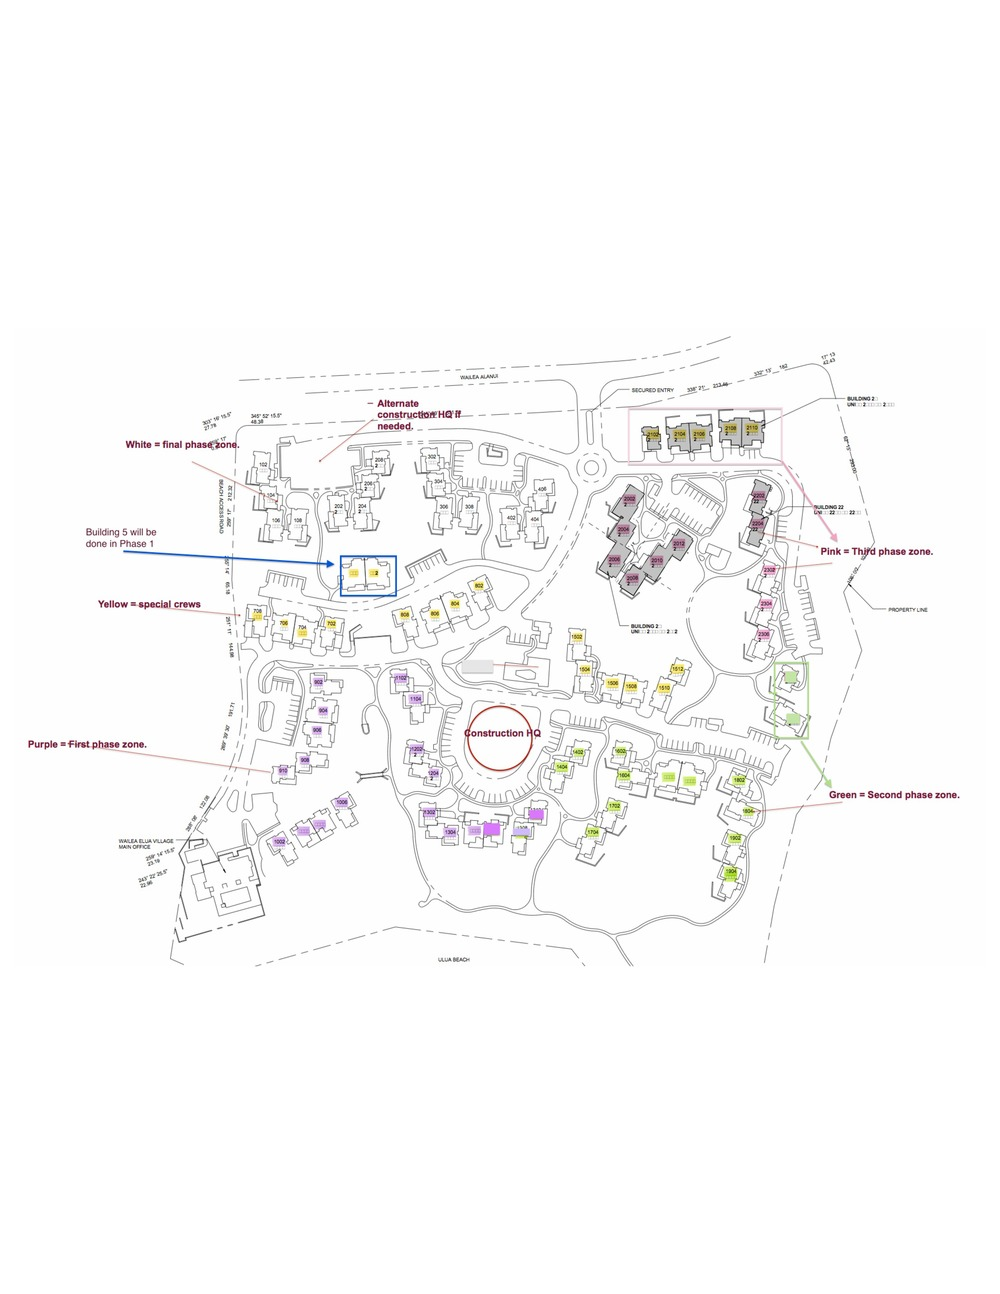 Wailea Elua Construction Map 10-01-14